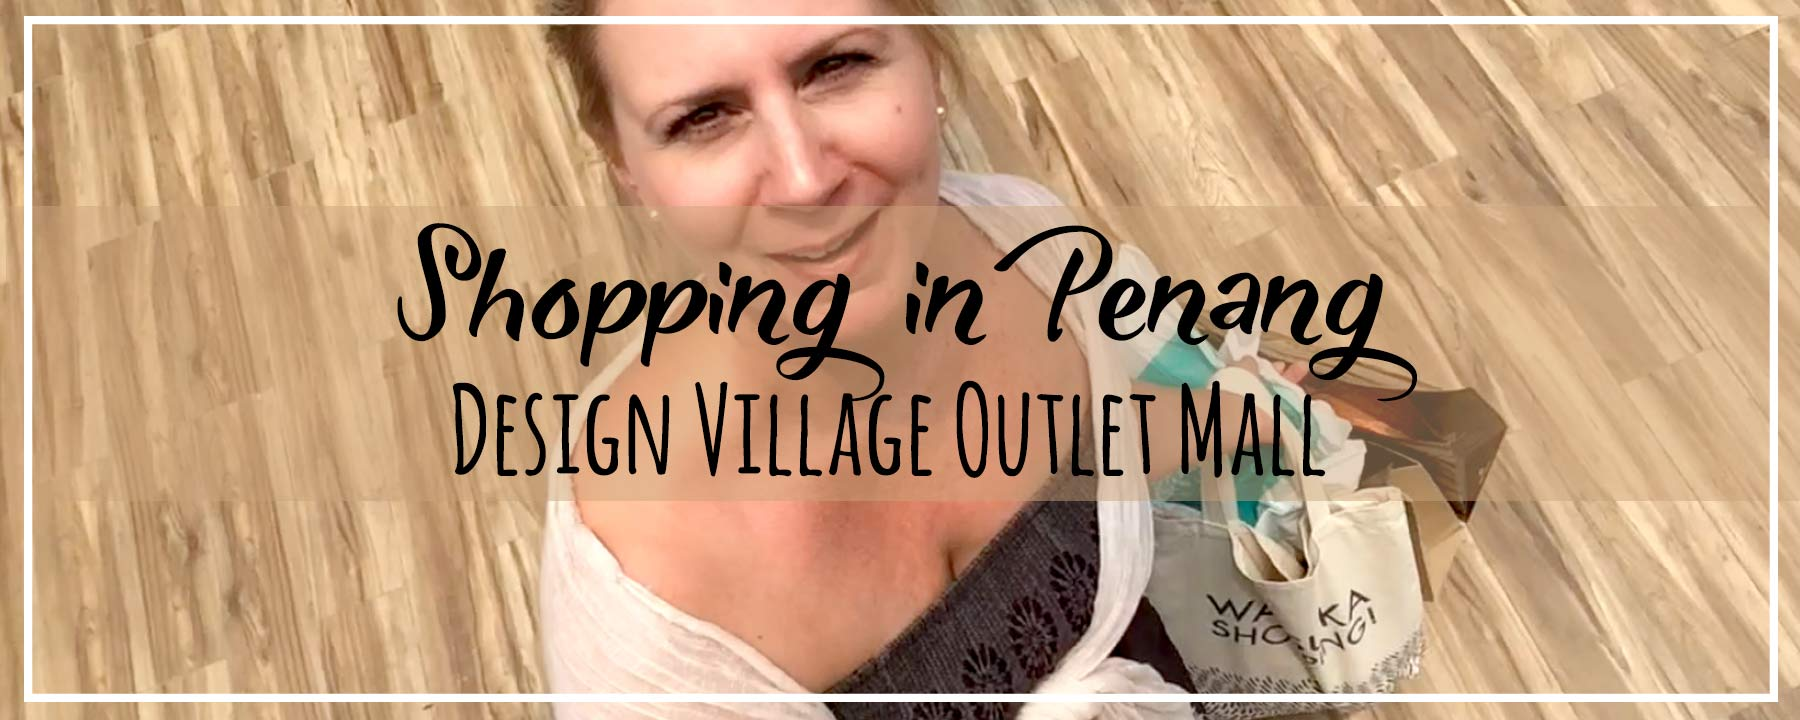 Cheap & Cheerful Shopping in Penang at Design Village, Biggest & Best Outlet Mall in Malaysia